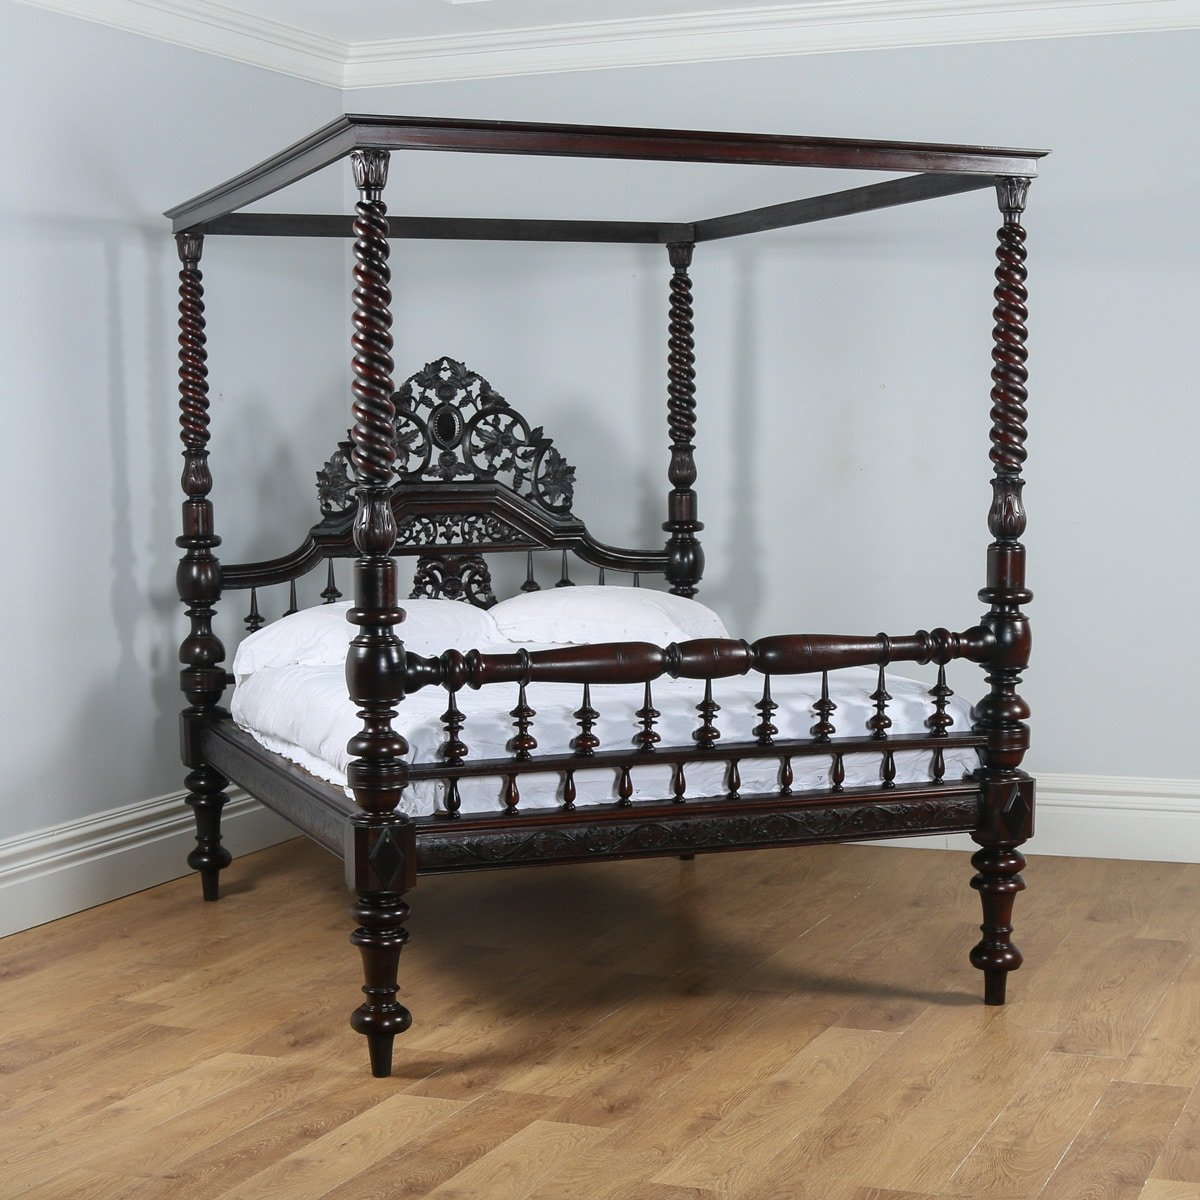 Antique 5ft 7 Victorian Anglo Indian Colonial King Size Four Poster Bed Circa 1880